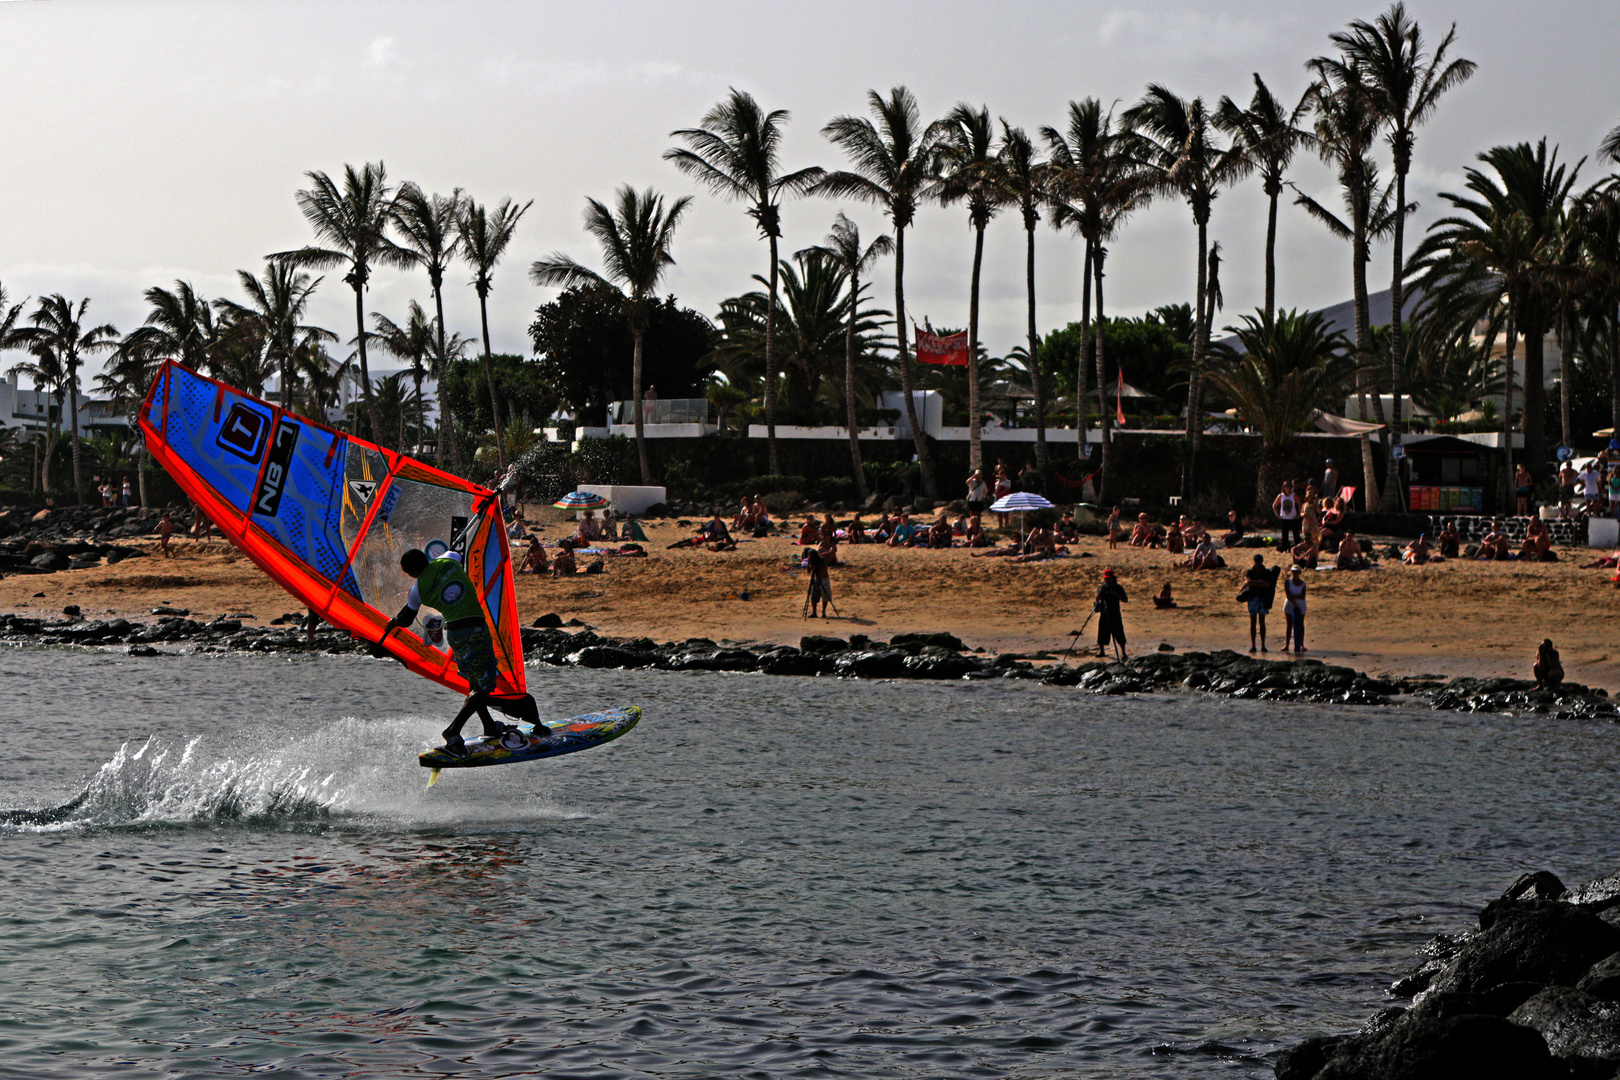 Freestyle Worldcup 2014 Lanzarote